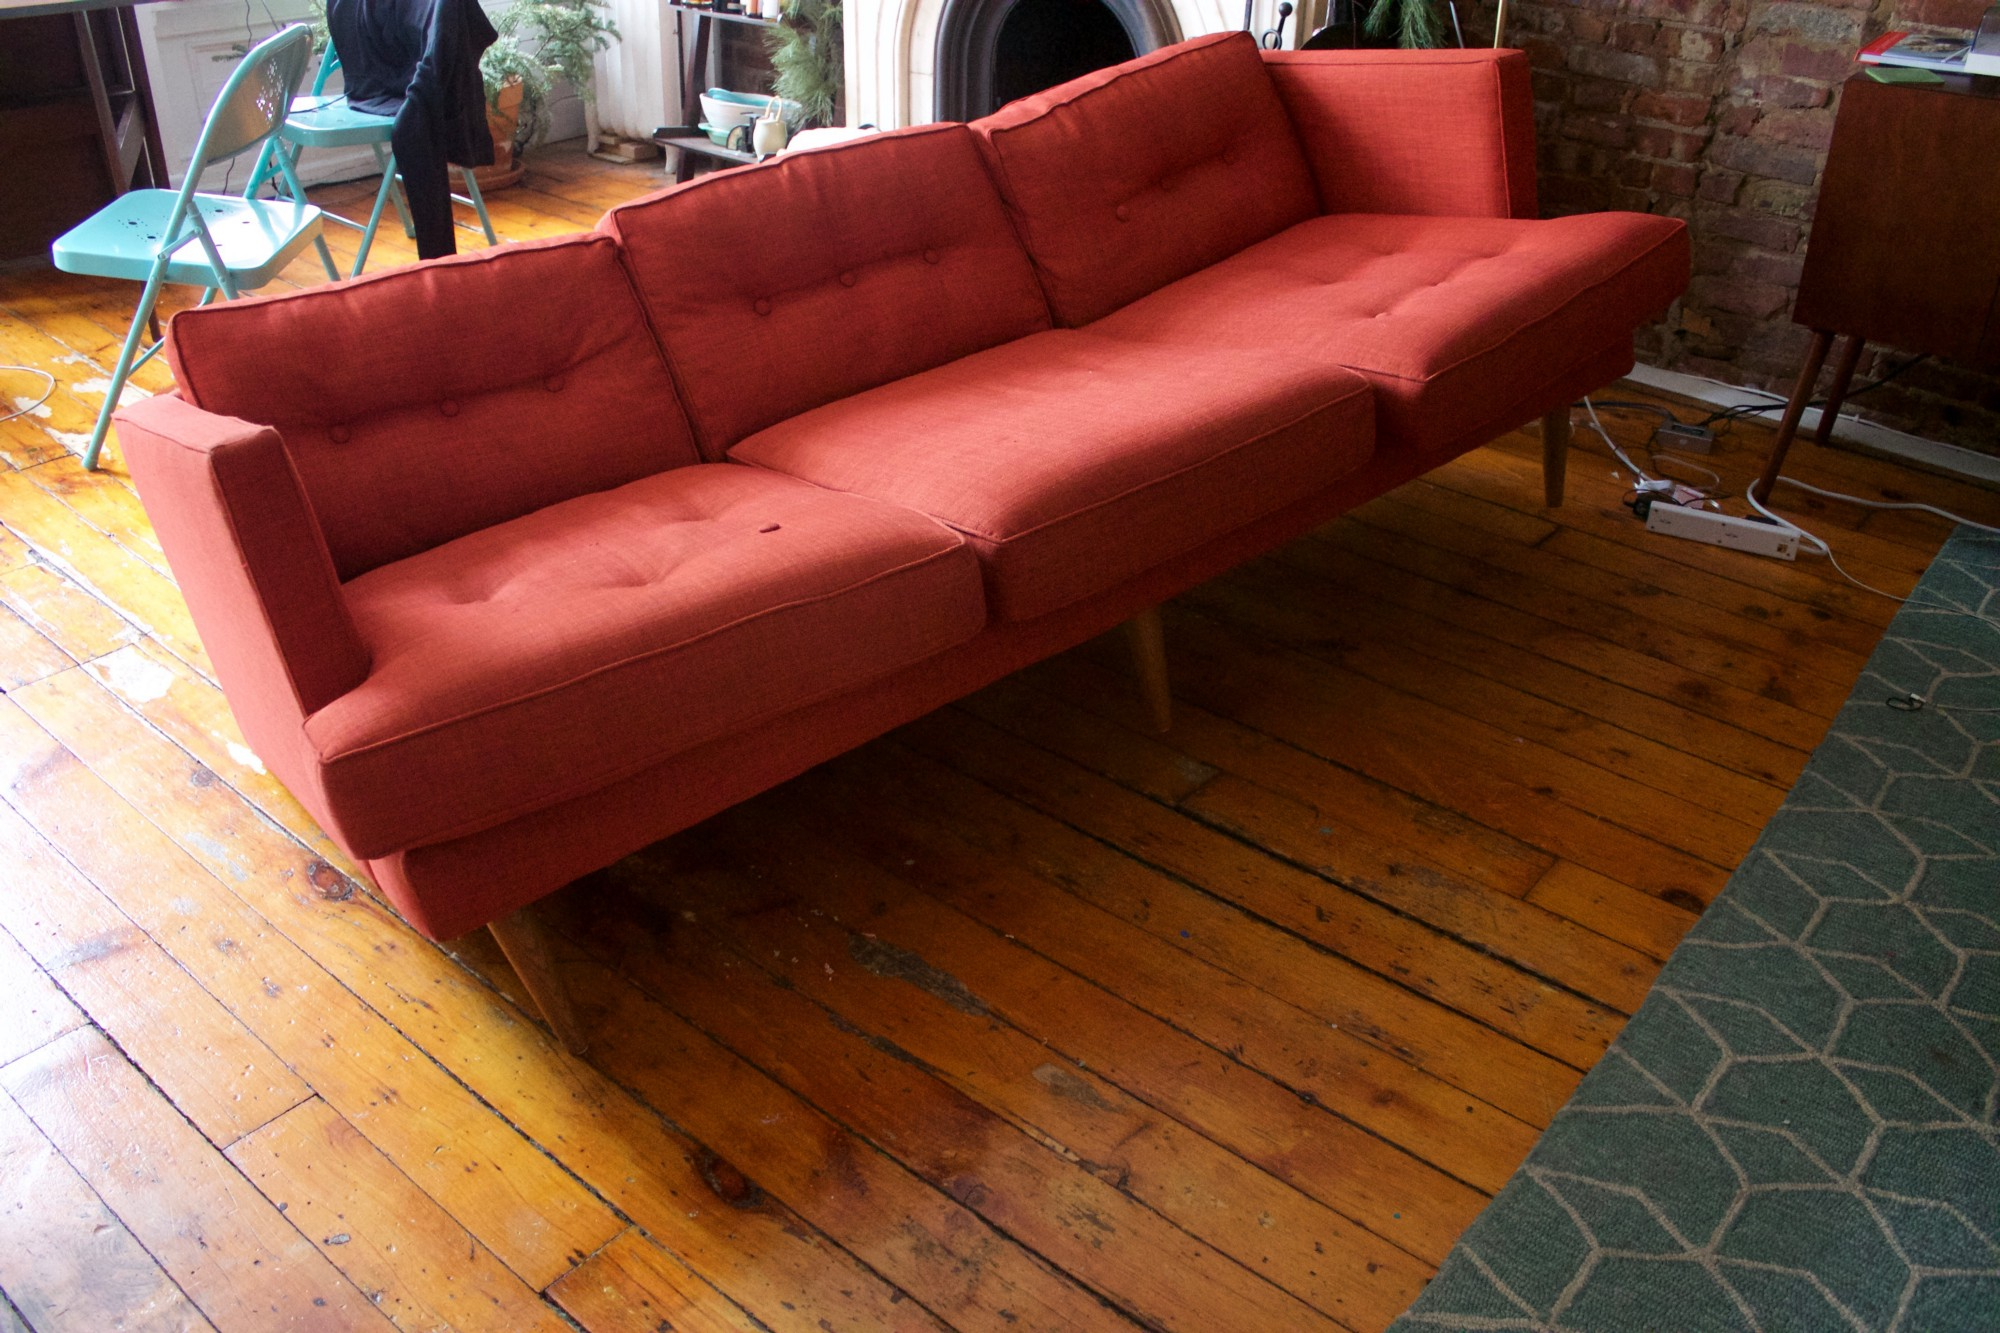 West Elm S Couch From Hell Update Couch From Hell Goes